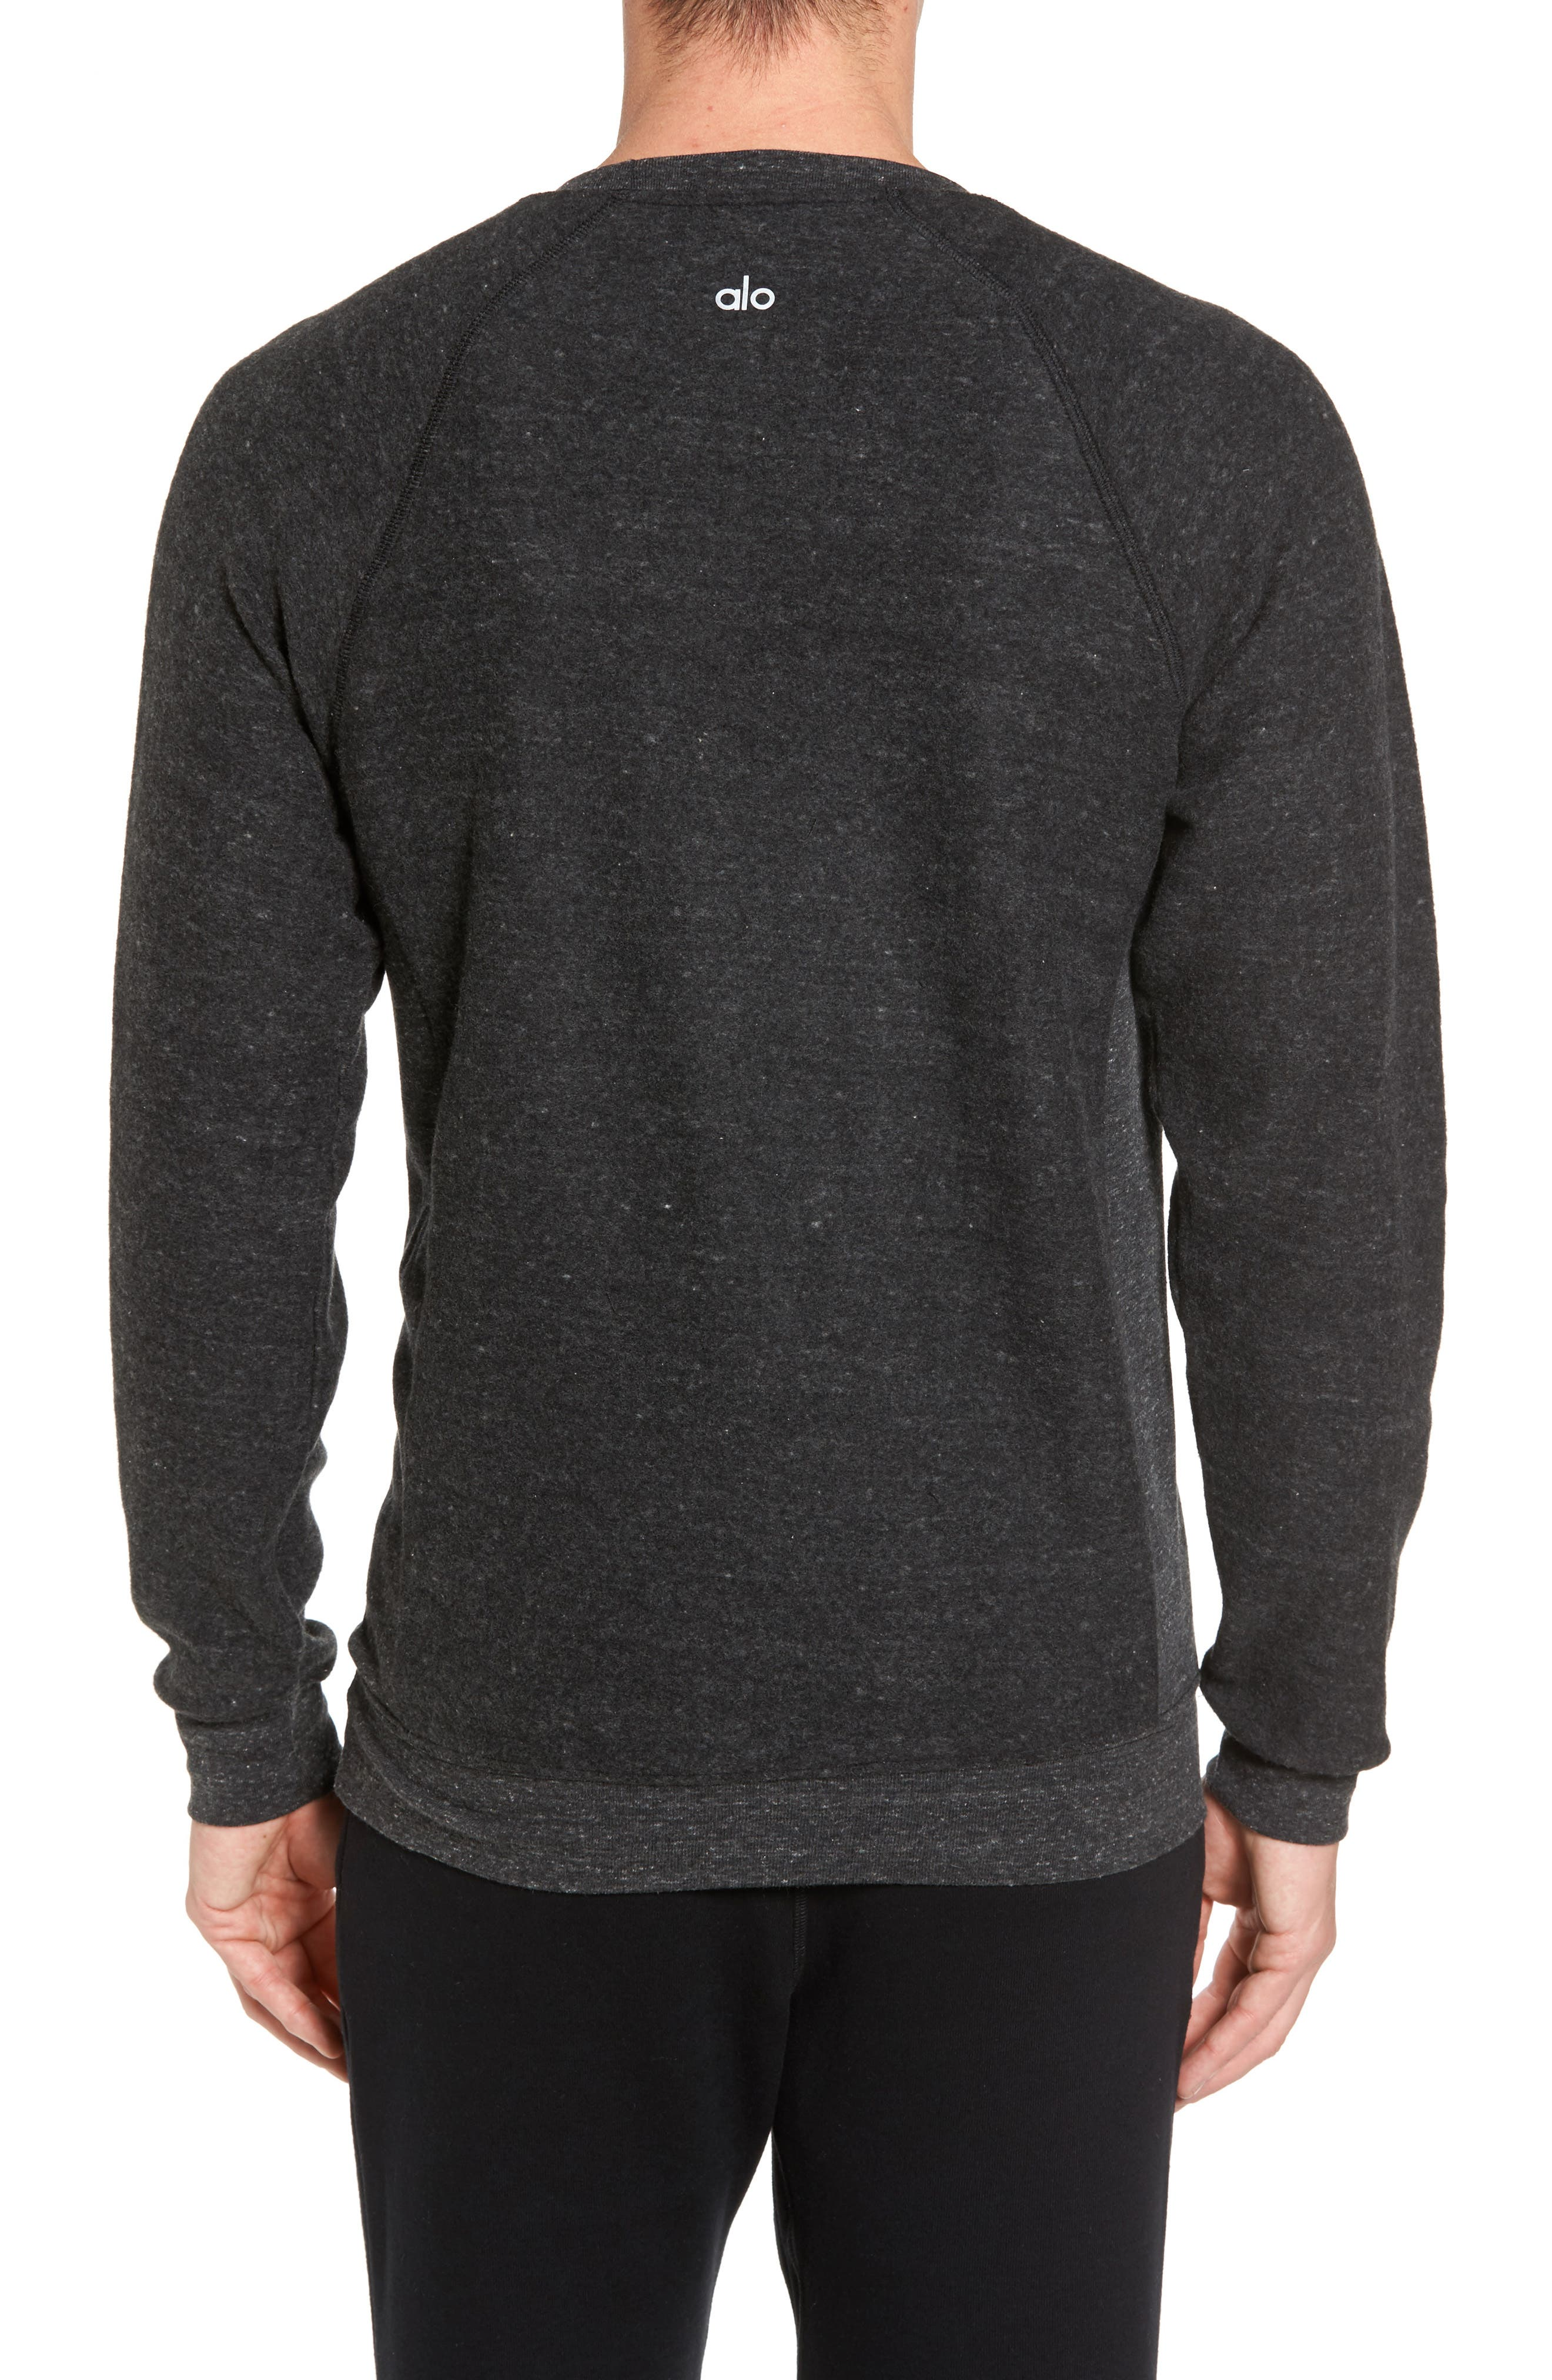 Relaxed Fit Felted Sweatshirt,                             Alternate thumbnail 2, color,                             CHARCOAL BLACK TRIBLEND